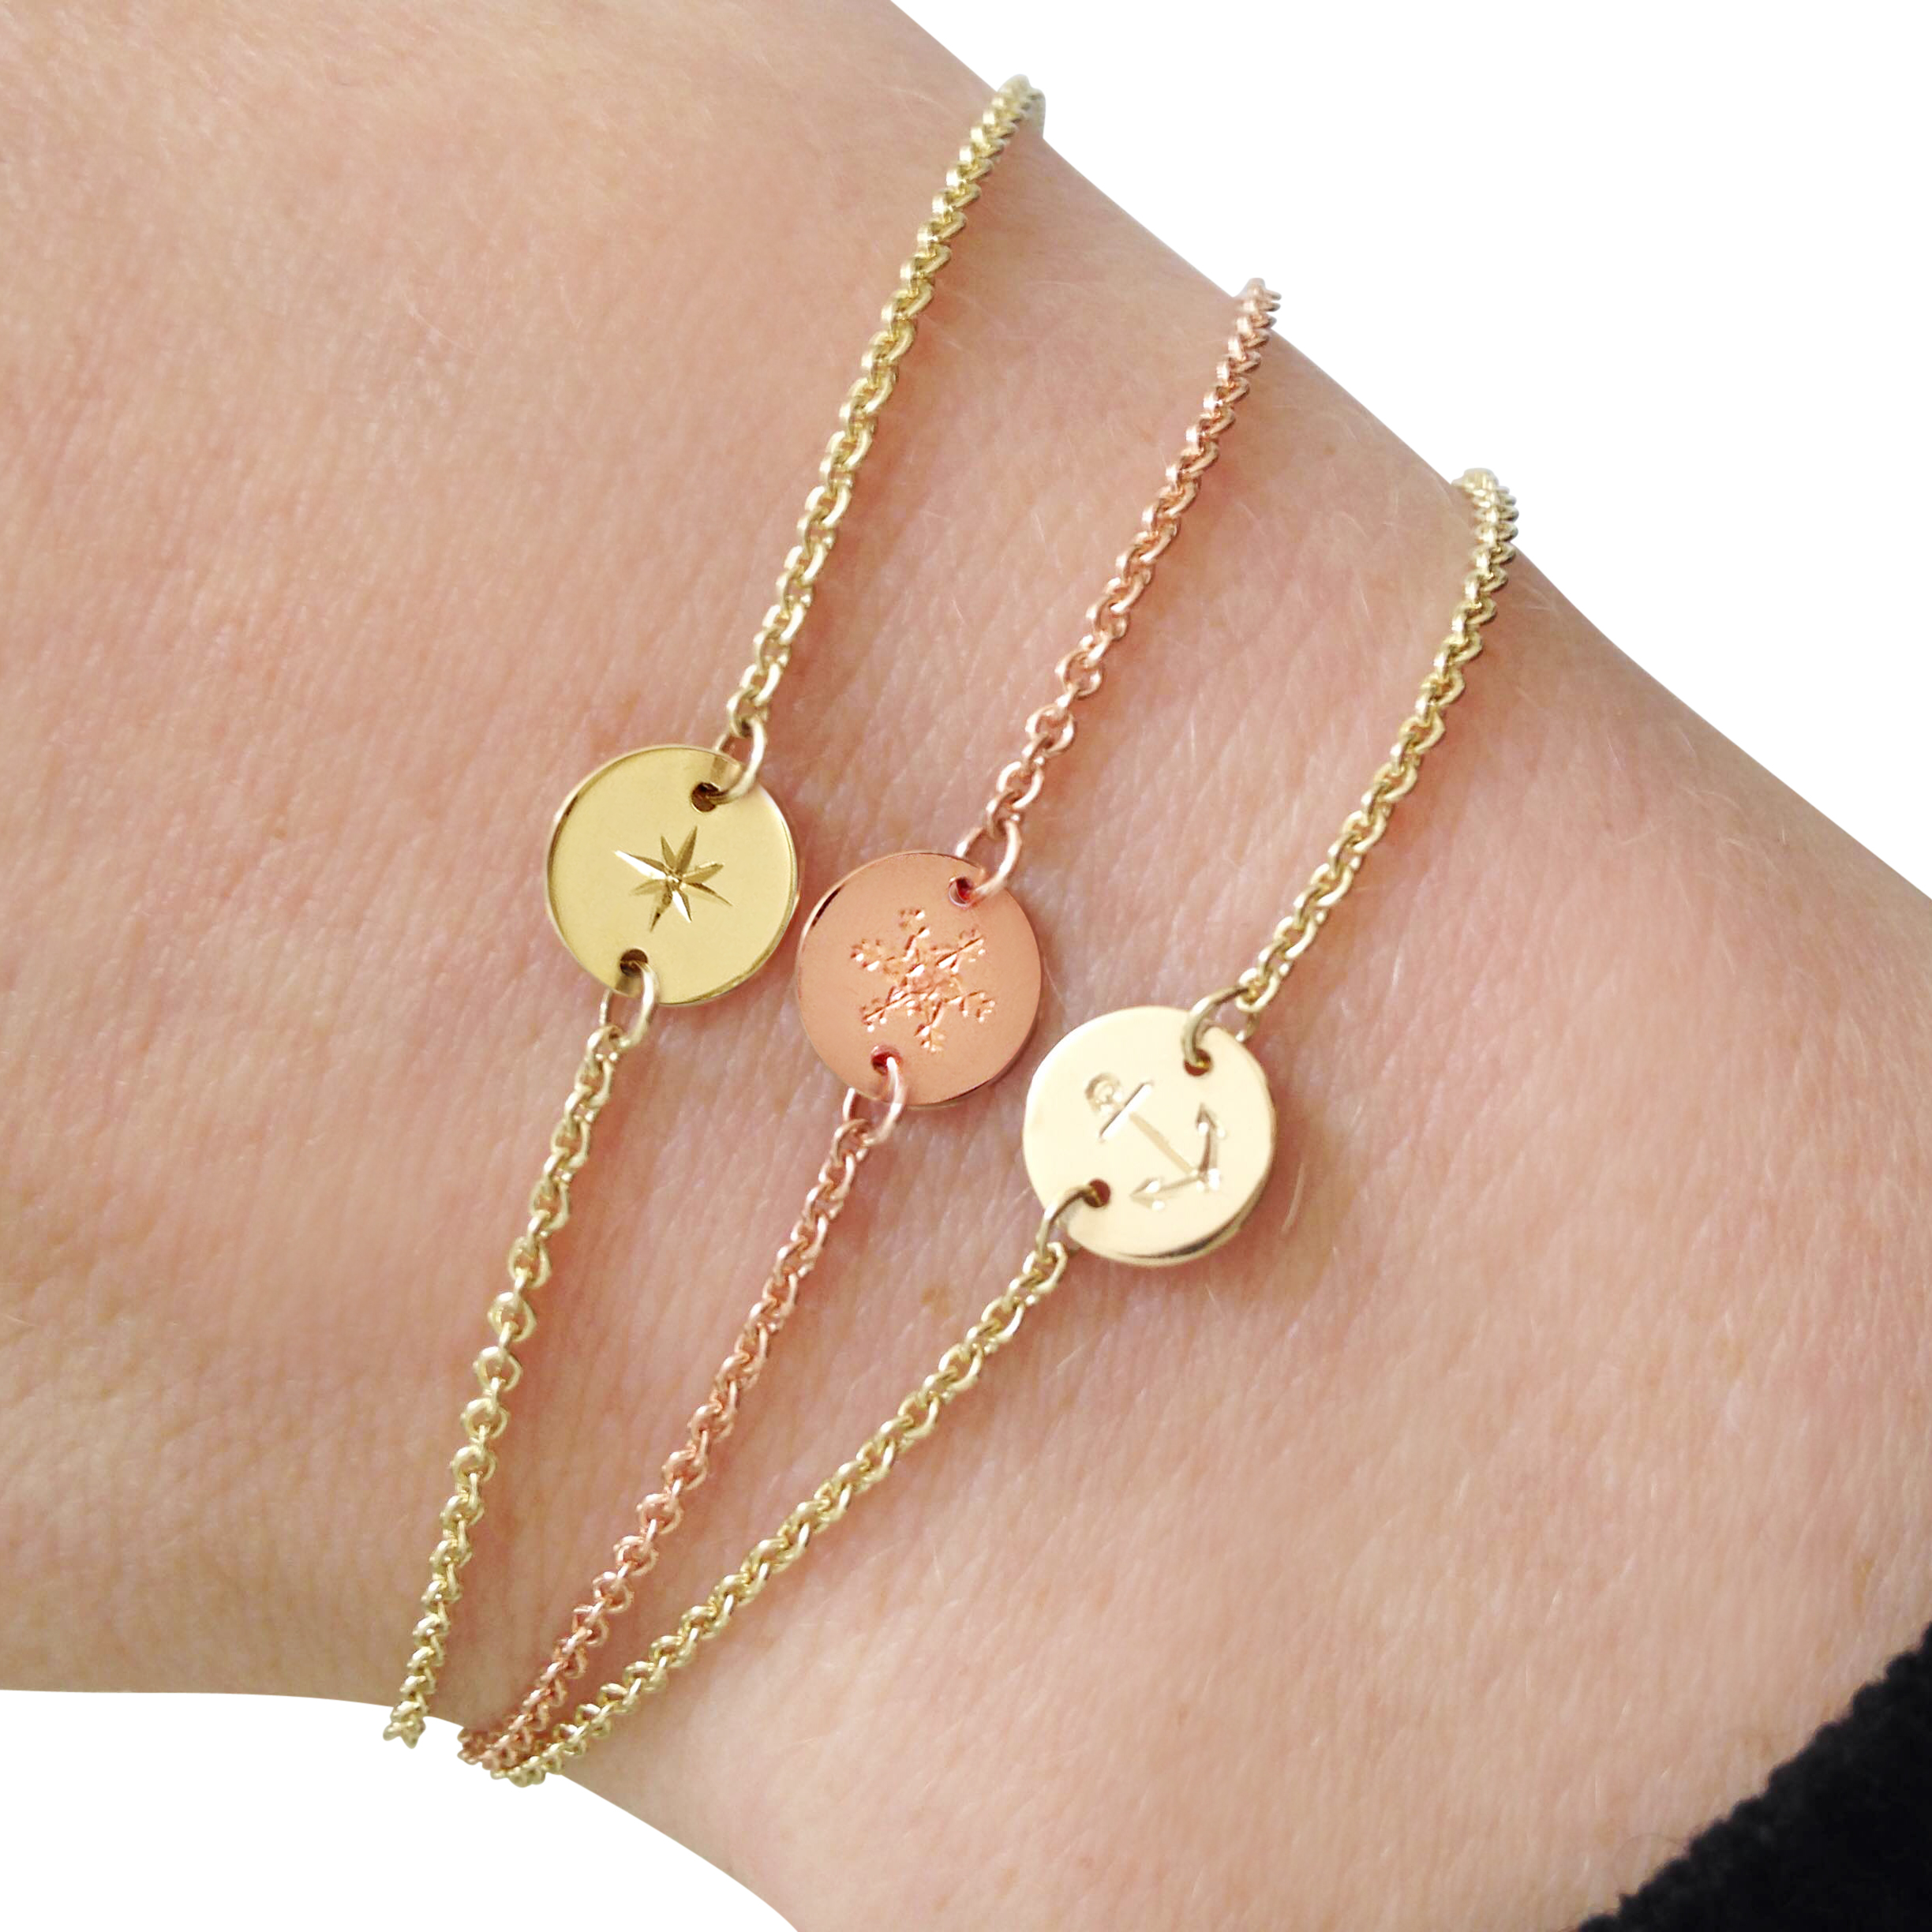 9ct-yellow-and-rose-gold-disc-bracelets-2.jpg